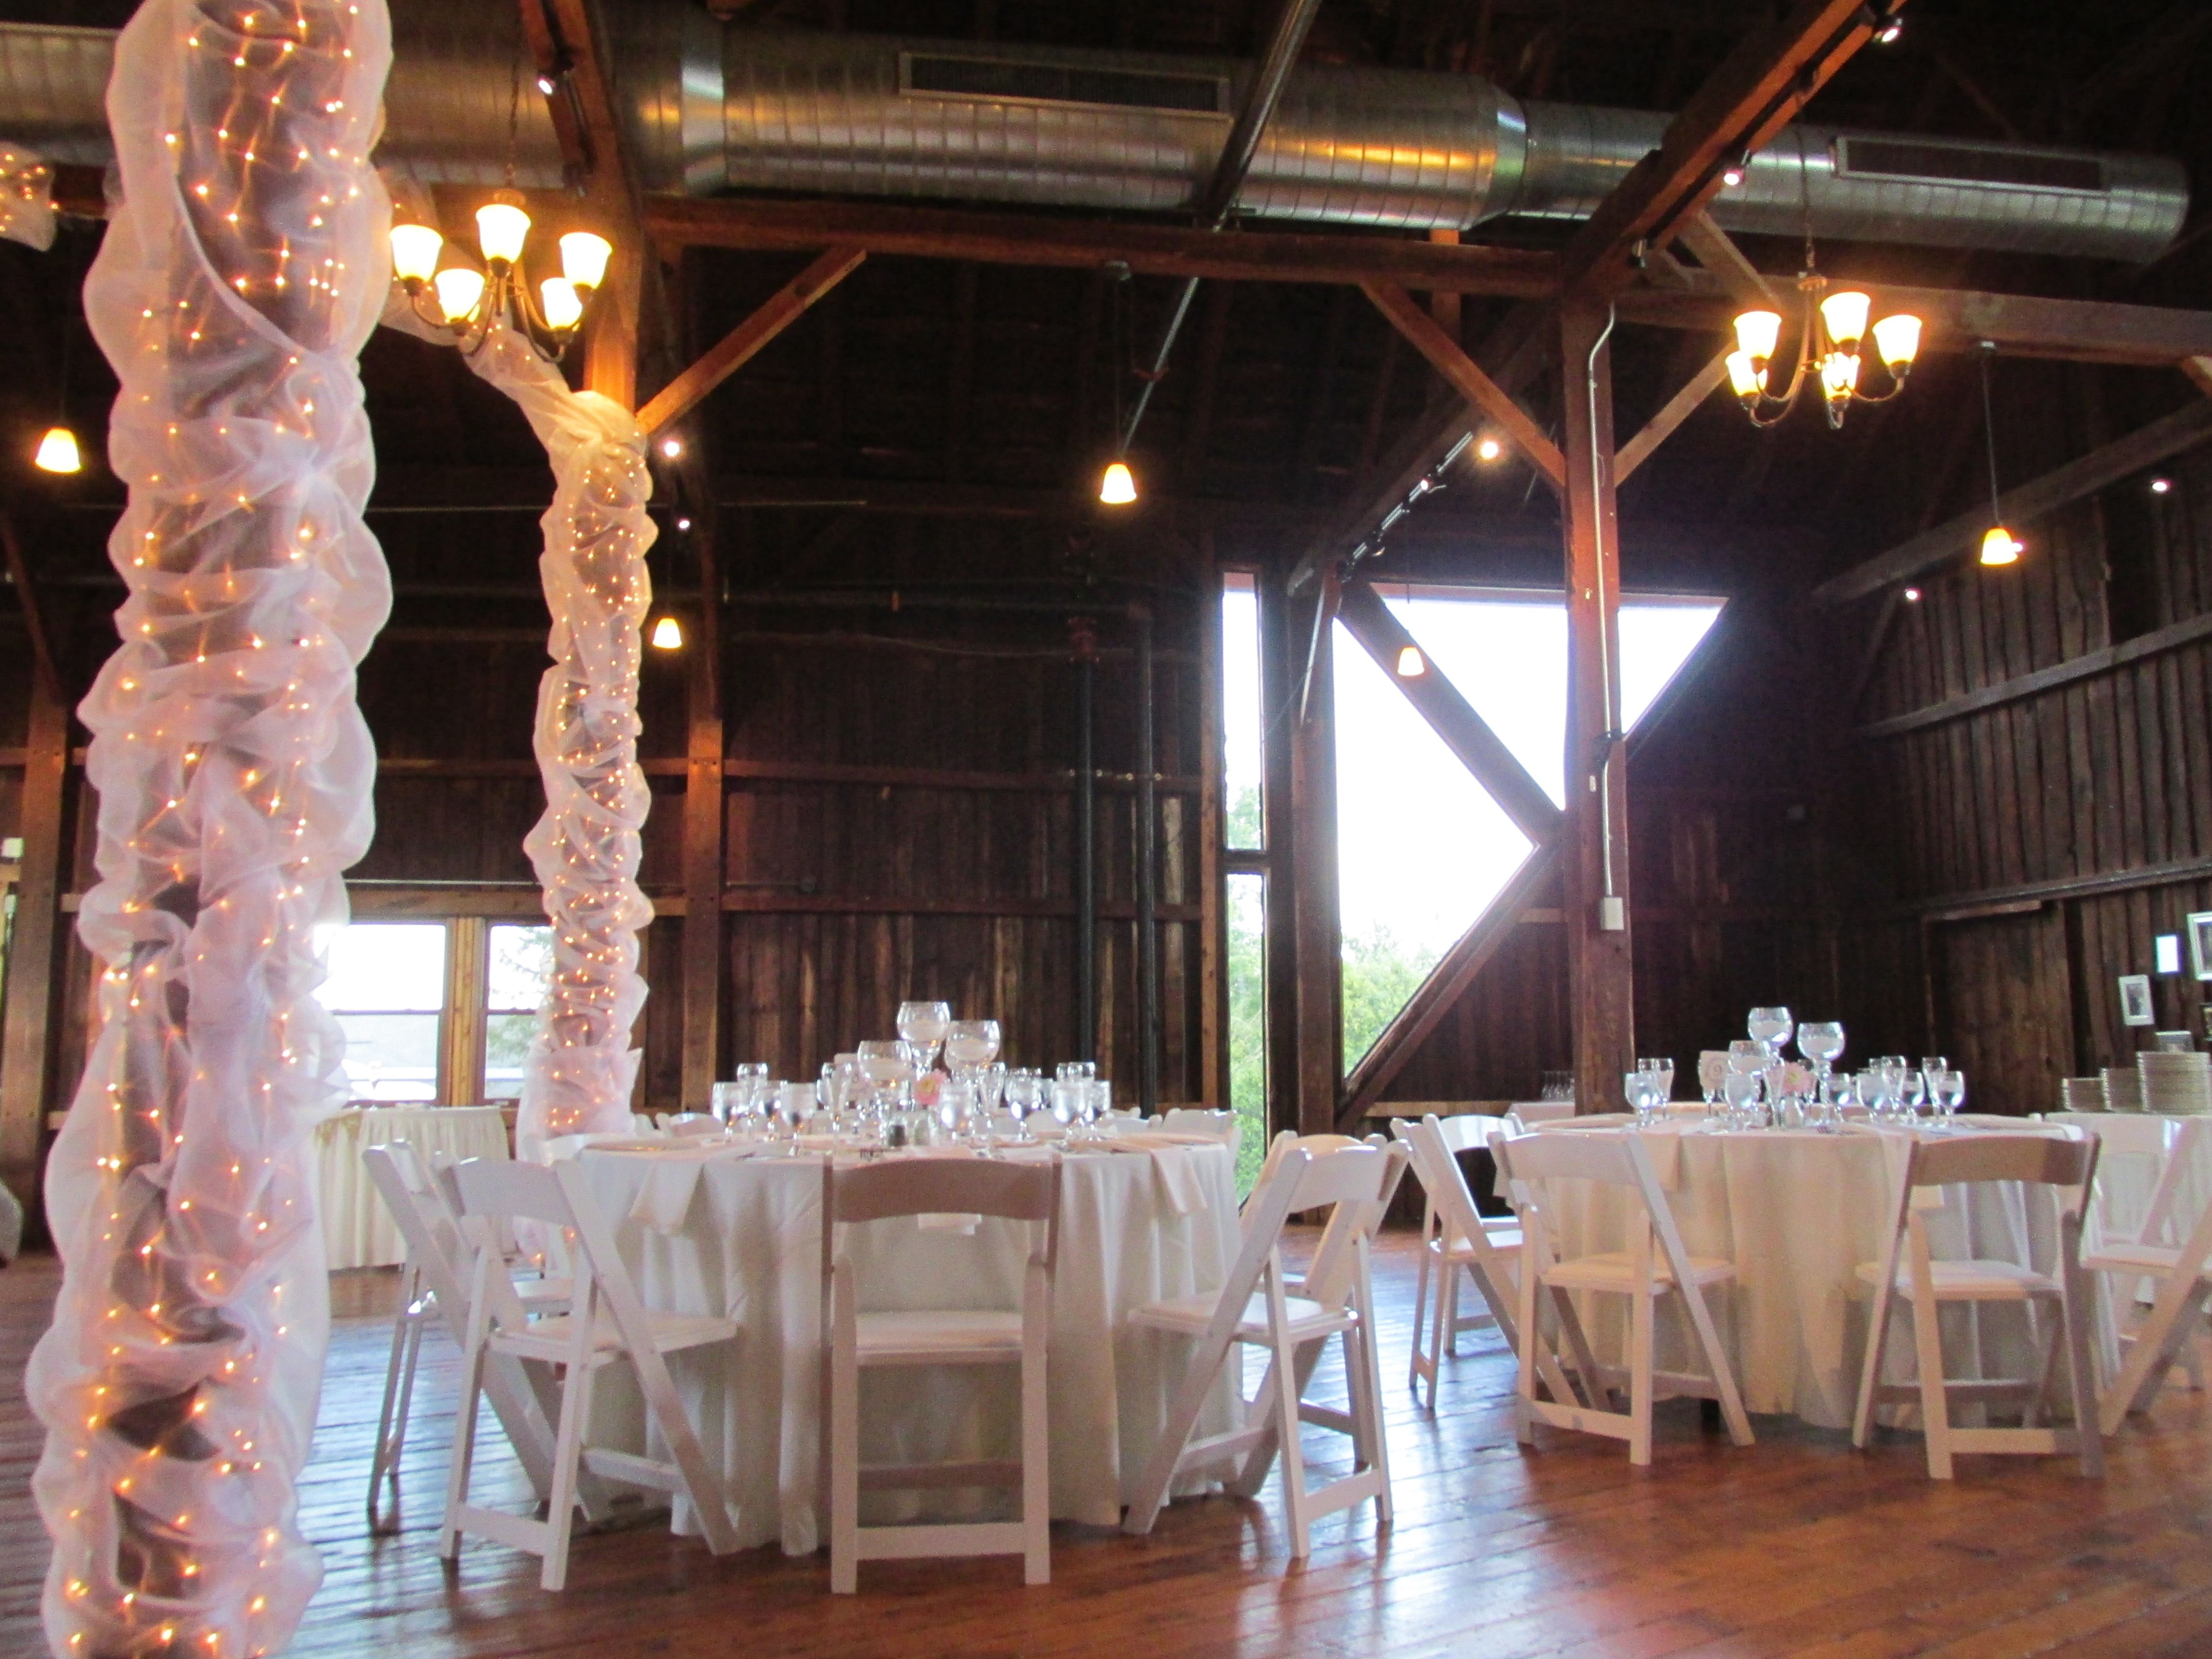 Book your tour of The Red Barn today! 413-559-5610, events@hampshire.edu